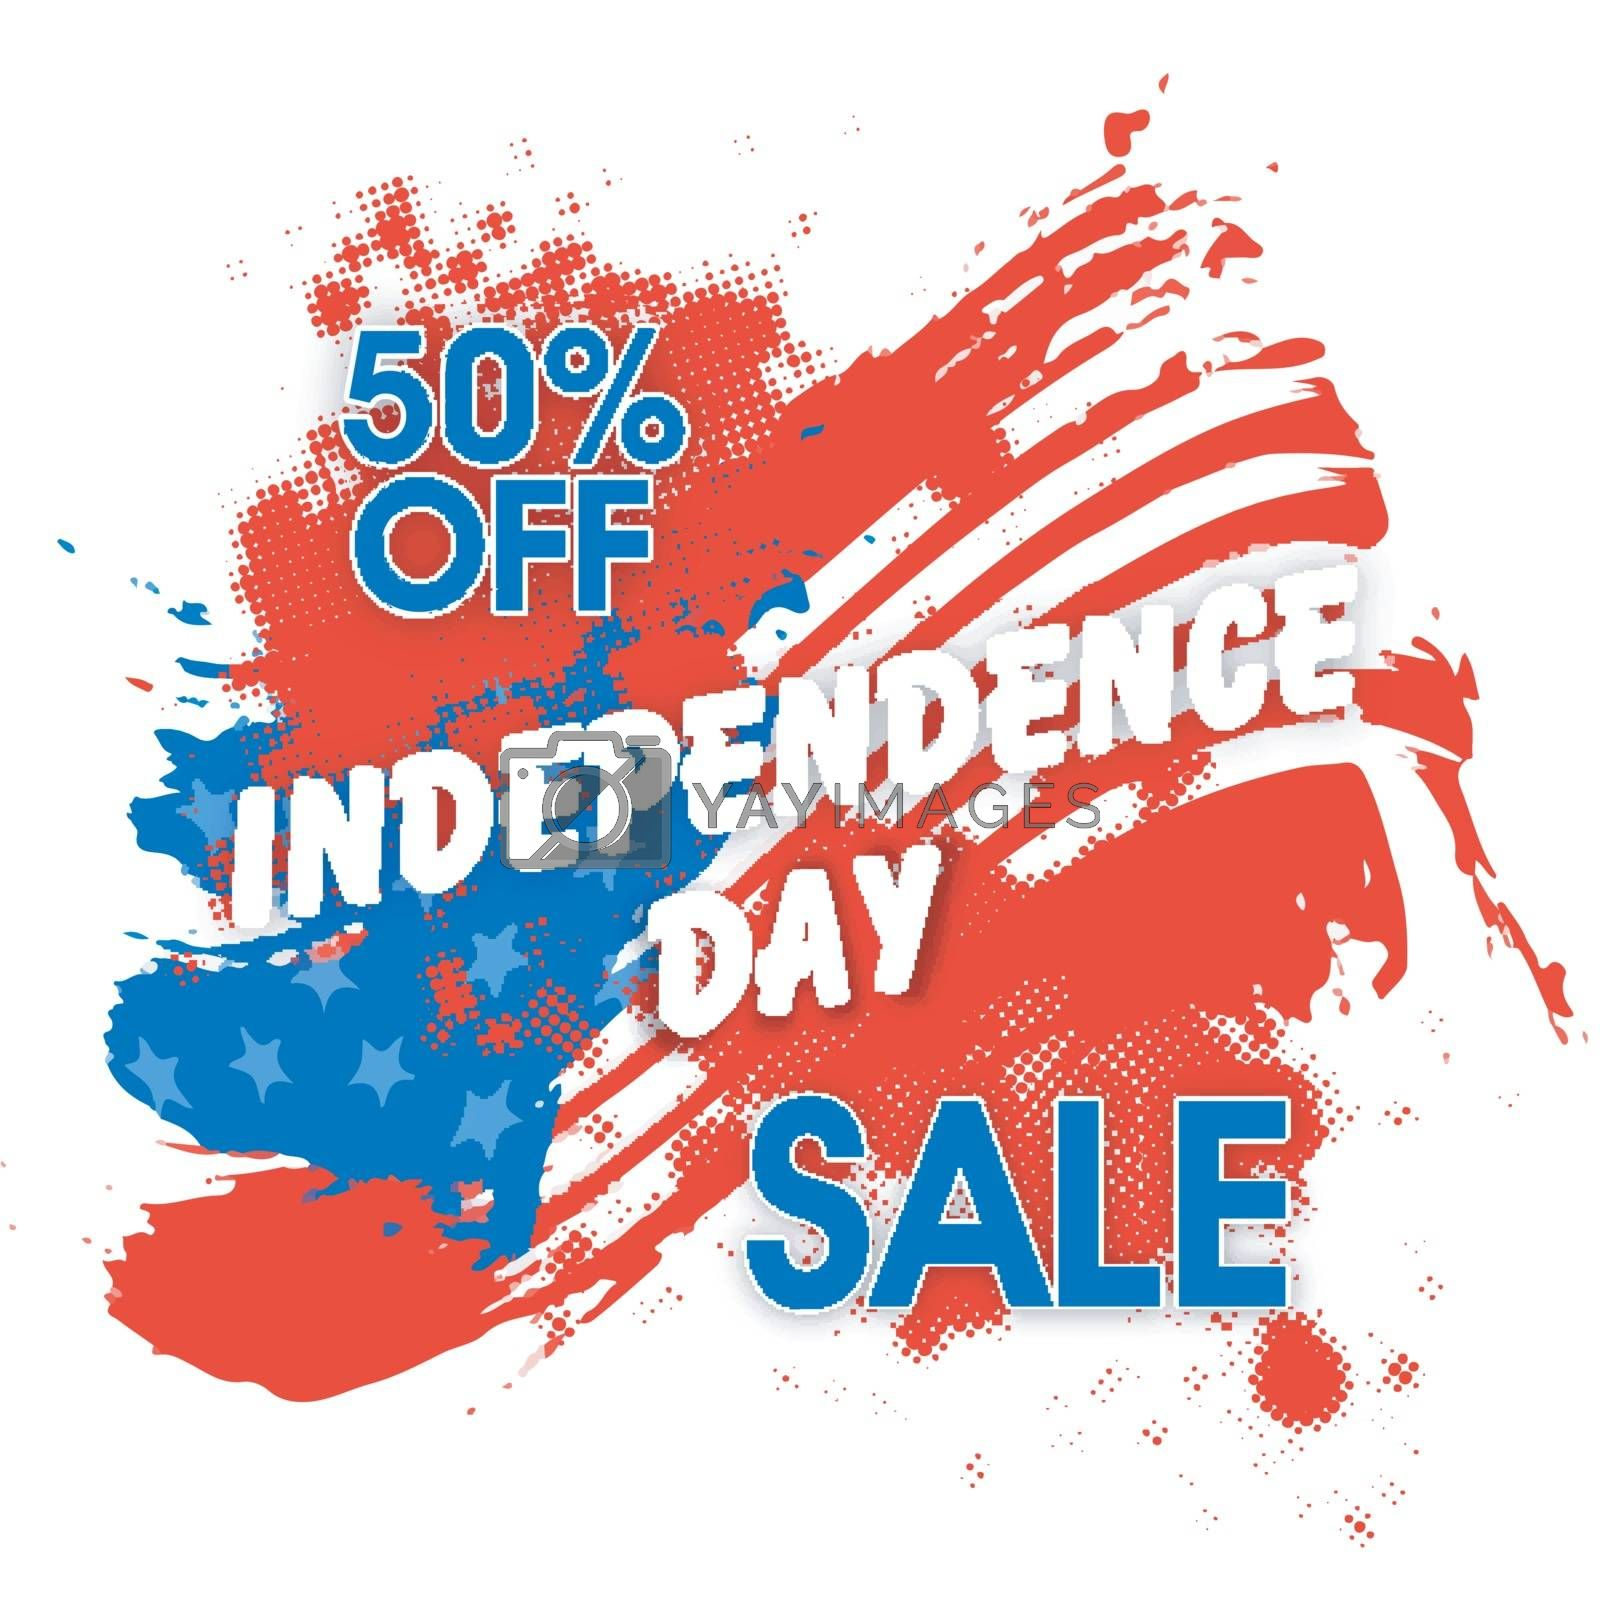 Independence Day Sale background with American Flag design and abstract halftone effect.